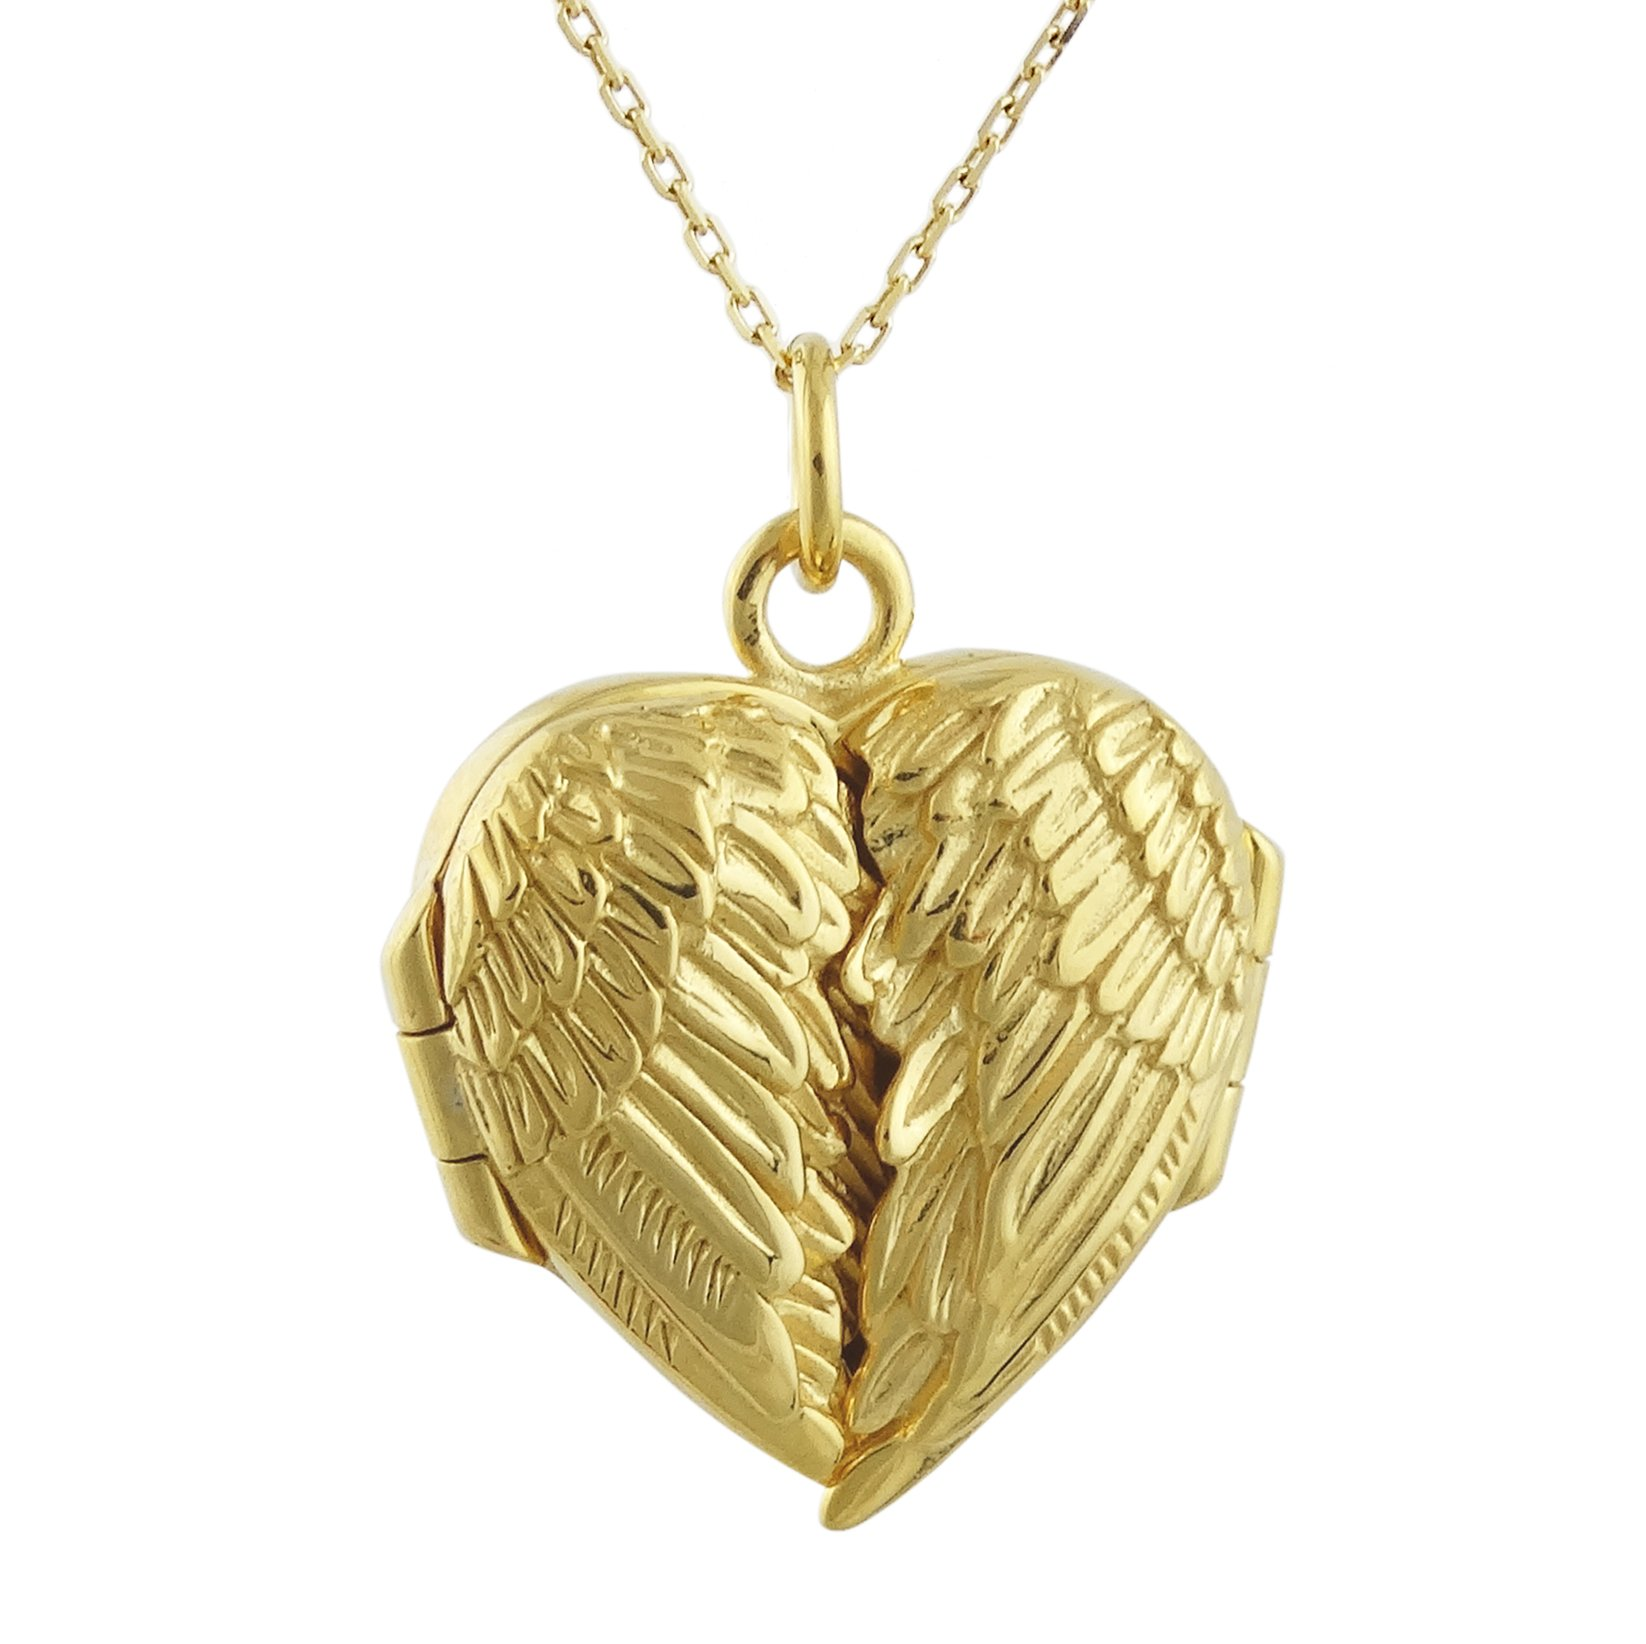 FashionJunkie4Life 18K Gold Plated Sterling Silver Angel Wings Heart Locket Necklace, 18'' Chain by FashionJunkie4Life (Image #1)